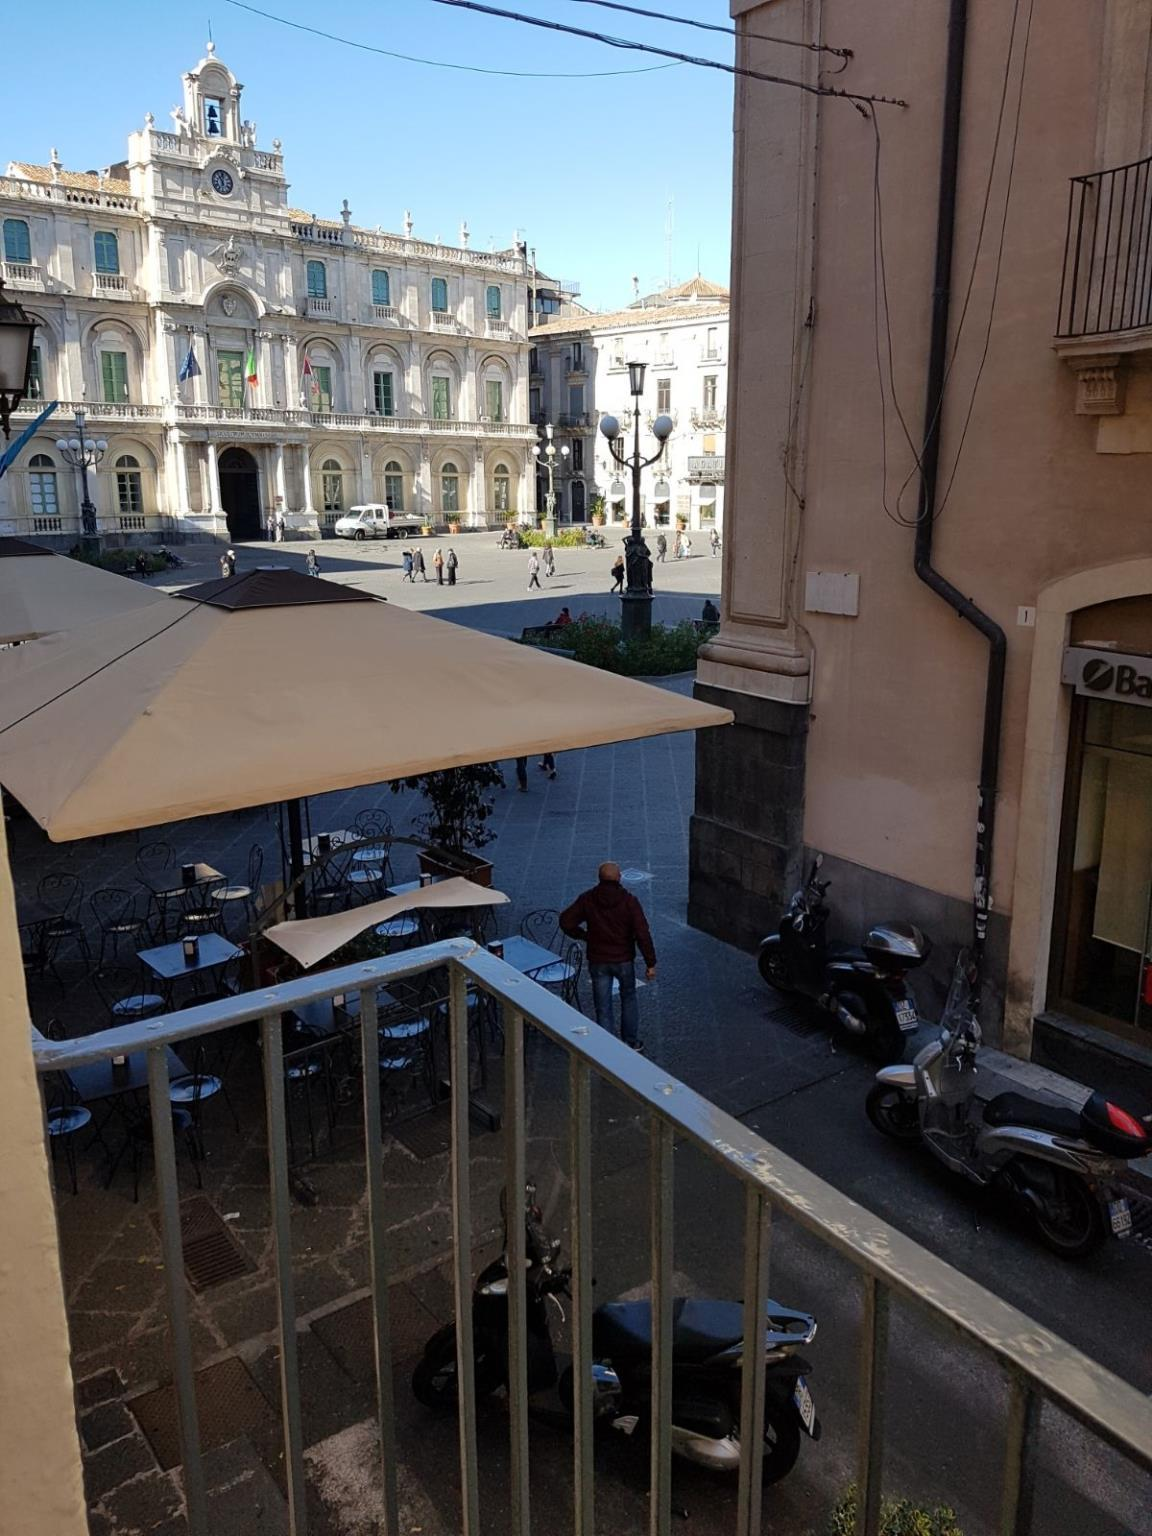 Up To 2 Adults + 1kid Beautiful Flat In Catania